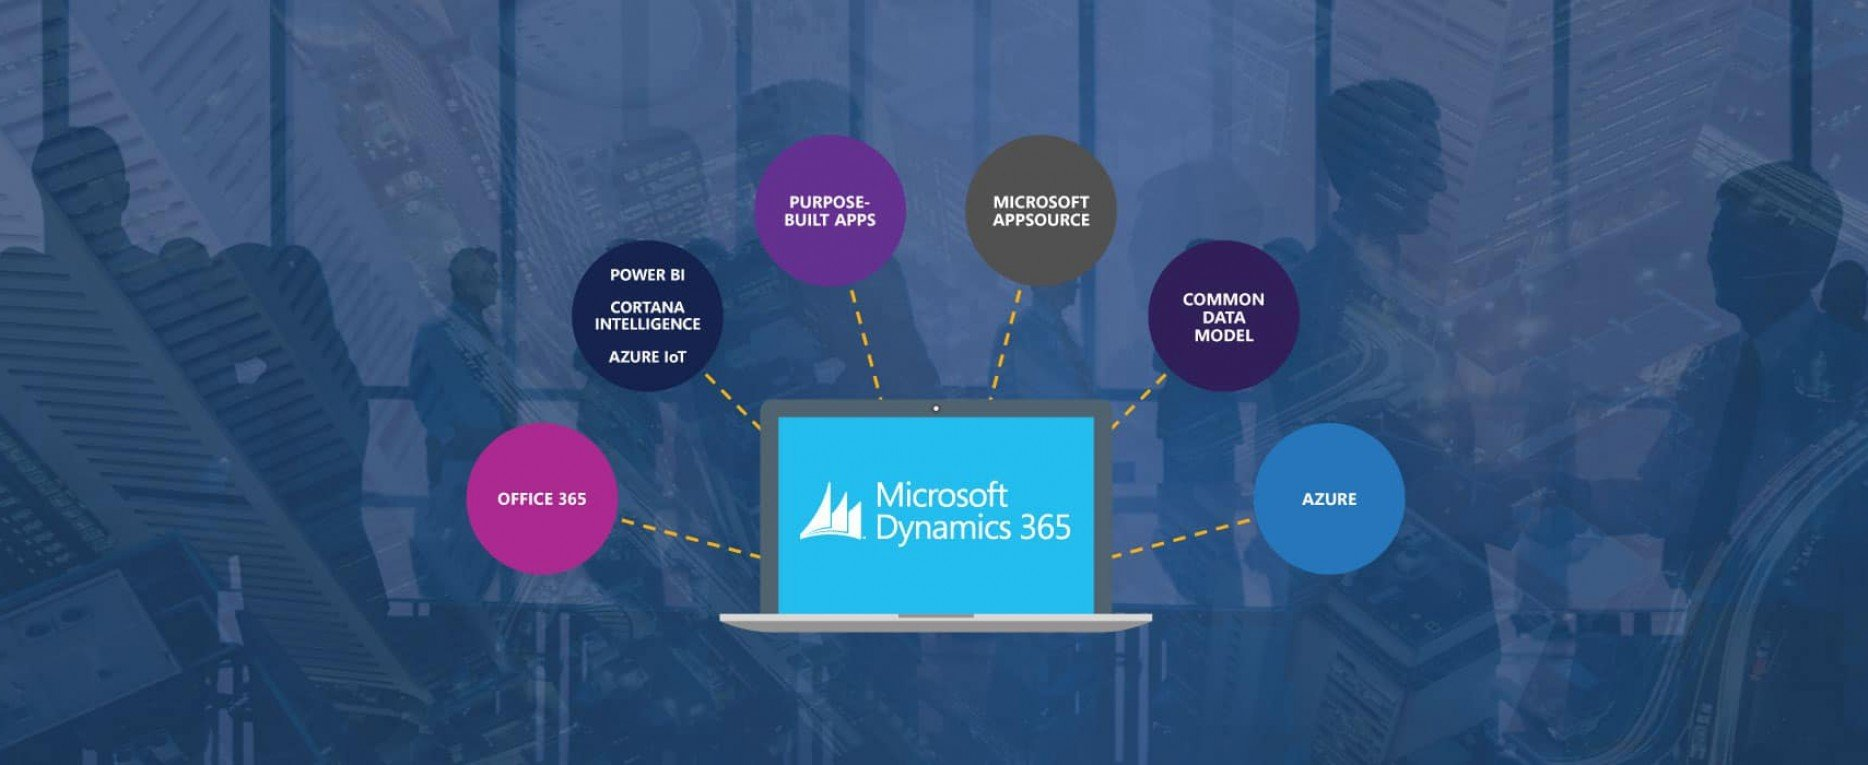 Co to jest Microsoft Dynamics 365?